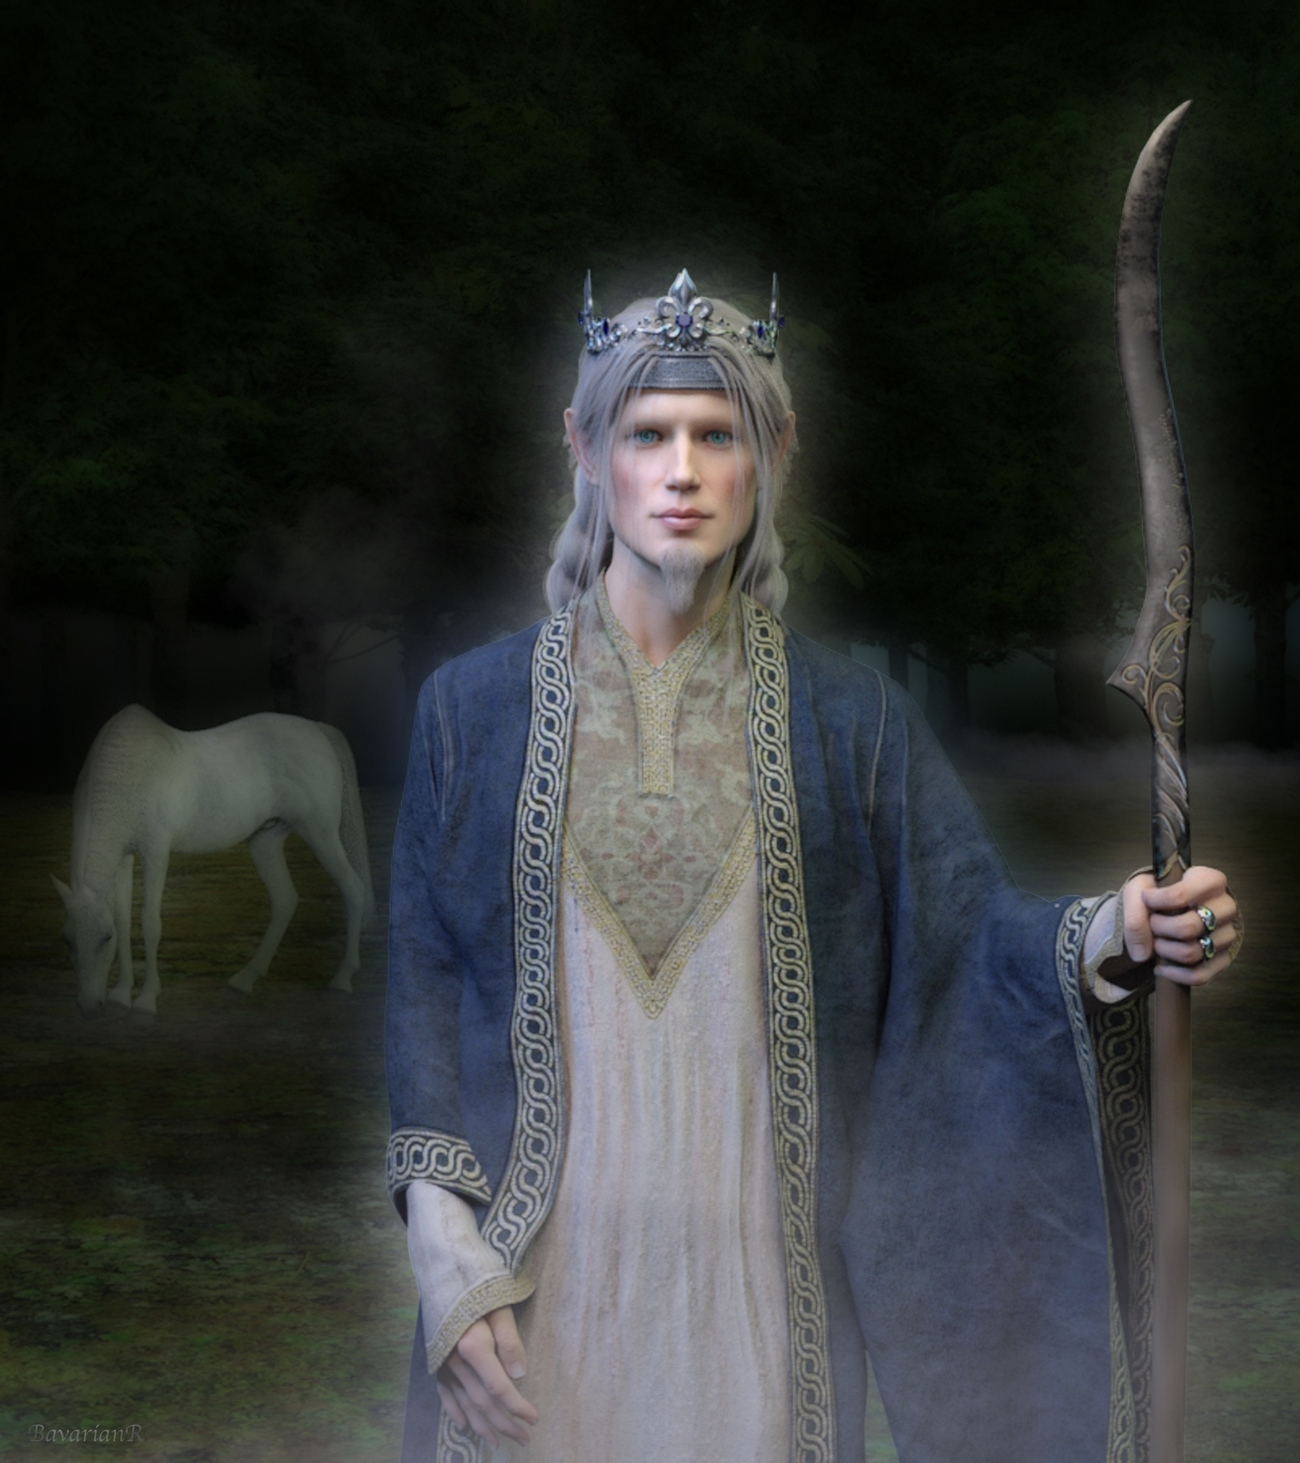 Elven Prince by BavarianR